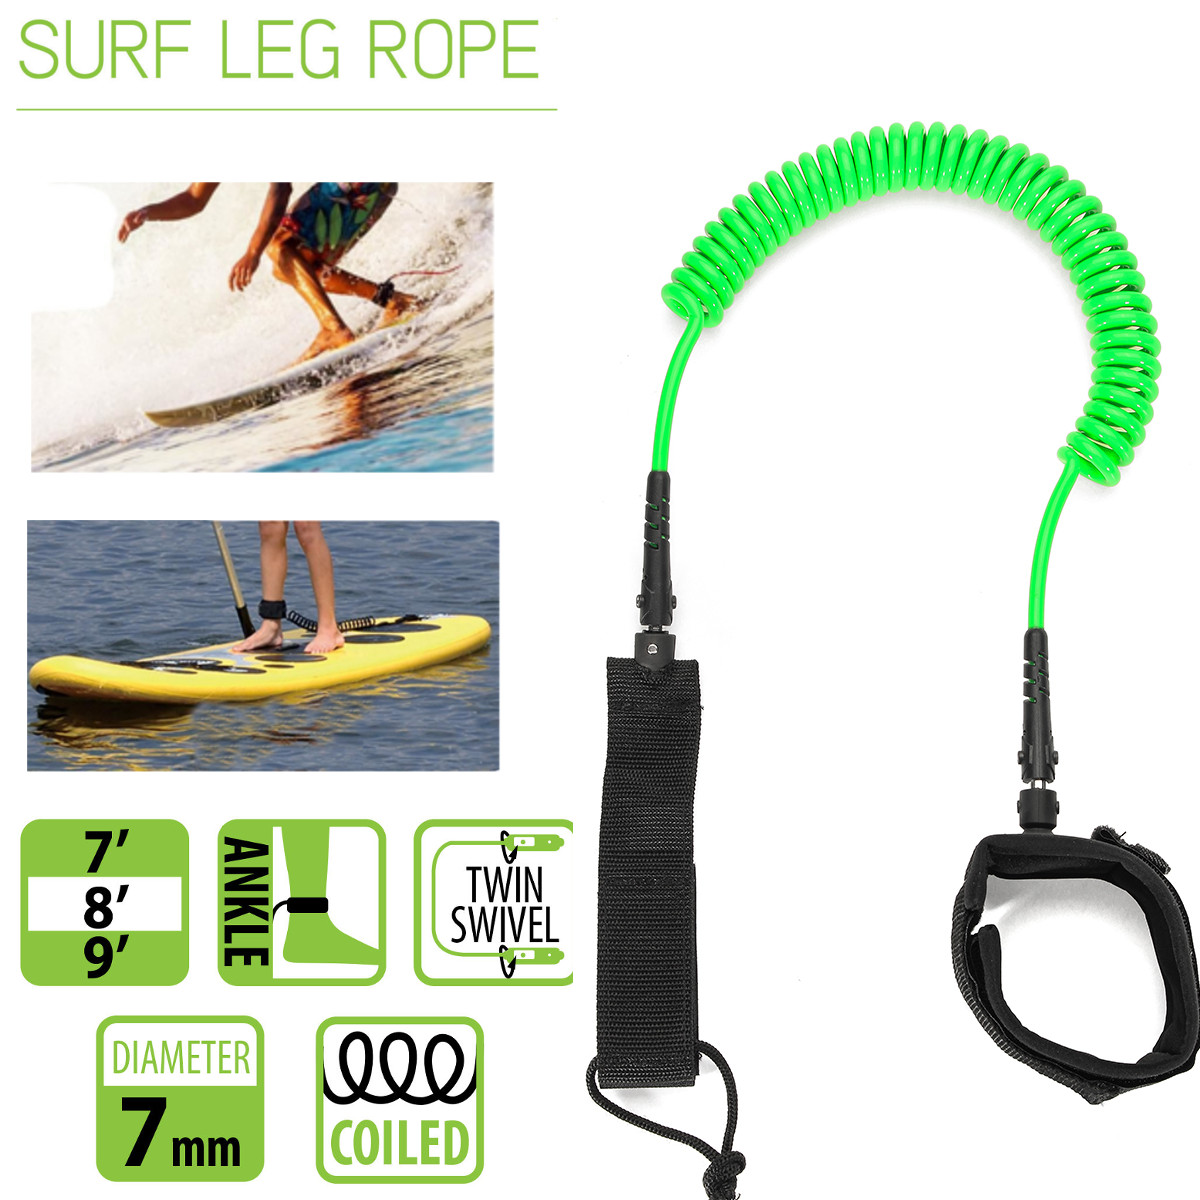 10ft 7mm SUP Cheville Laisse Surf Enroulé Stand UP Paddle Board TPU paddle board corde surf accessoire